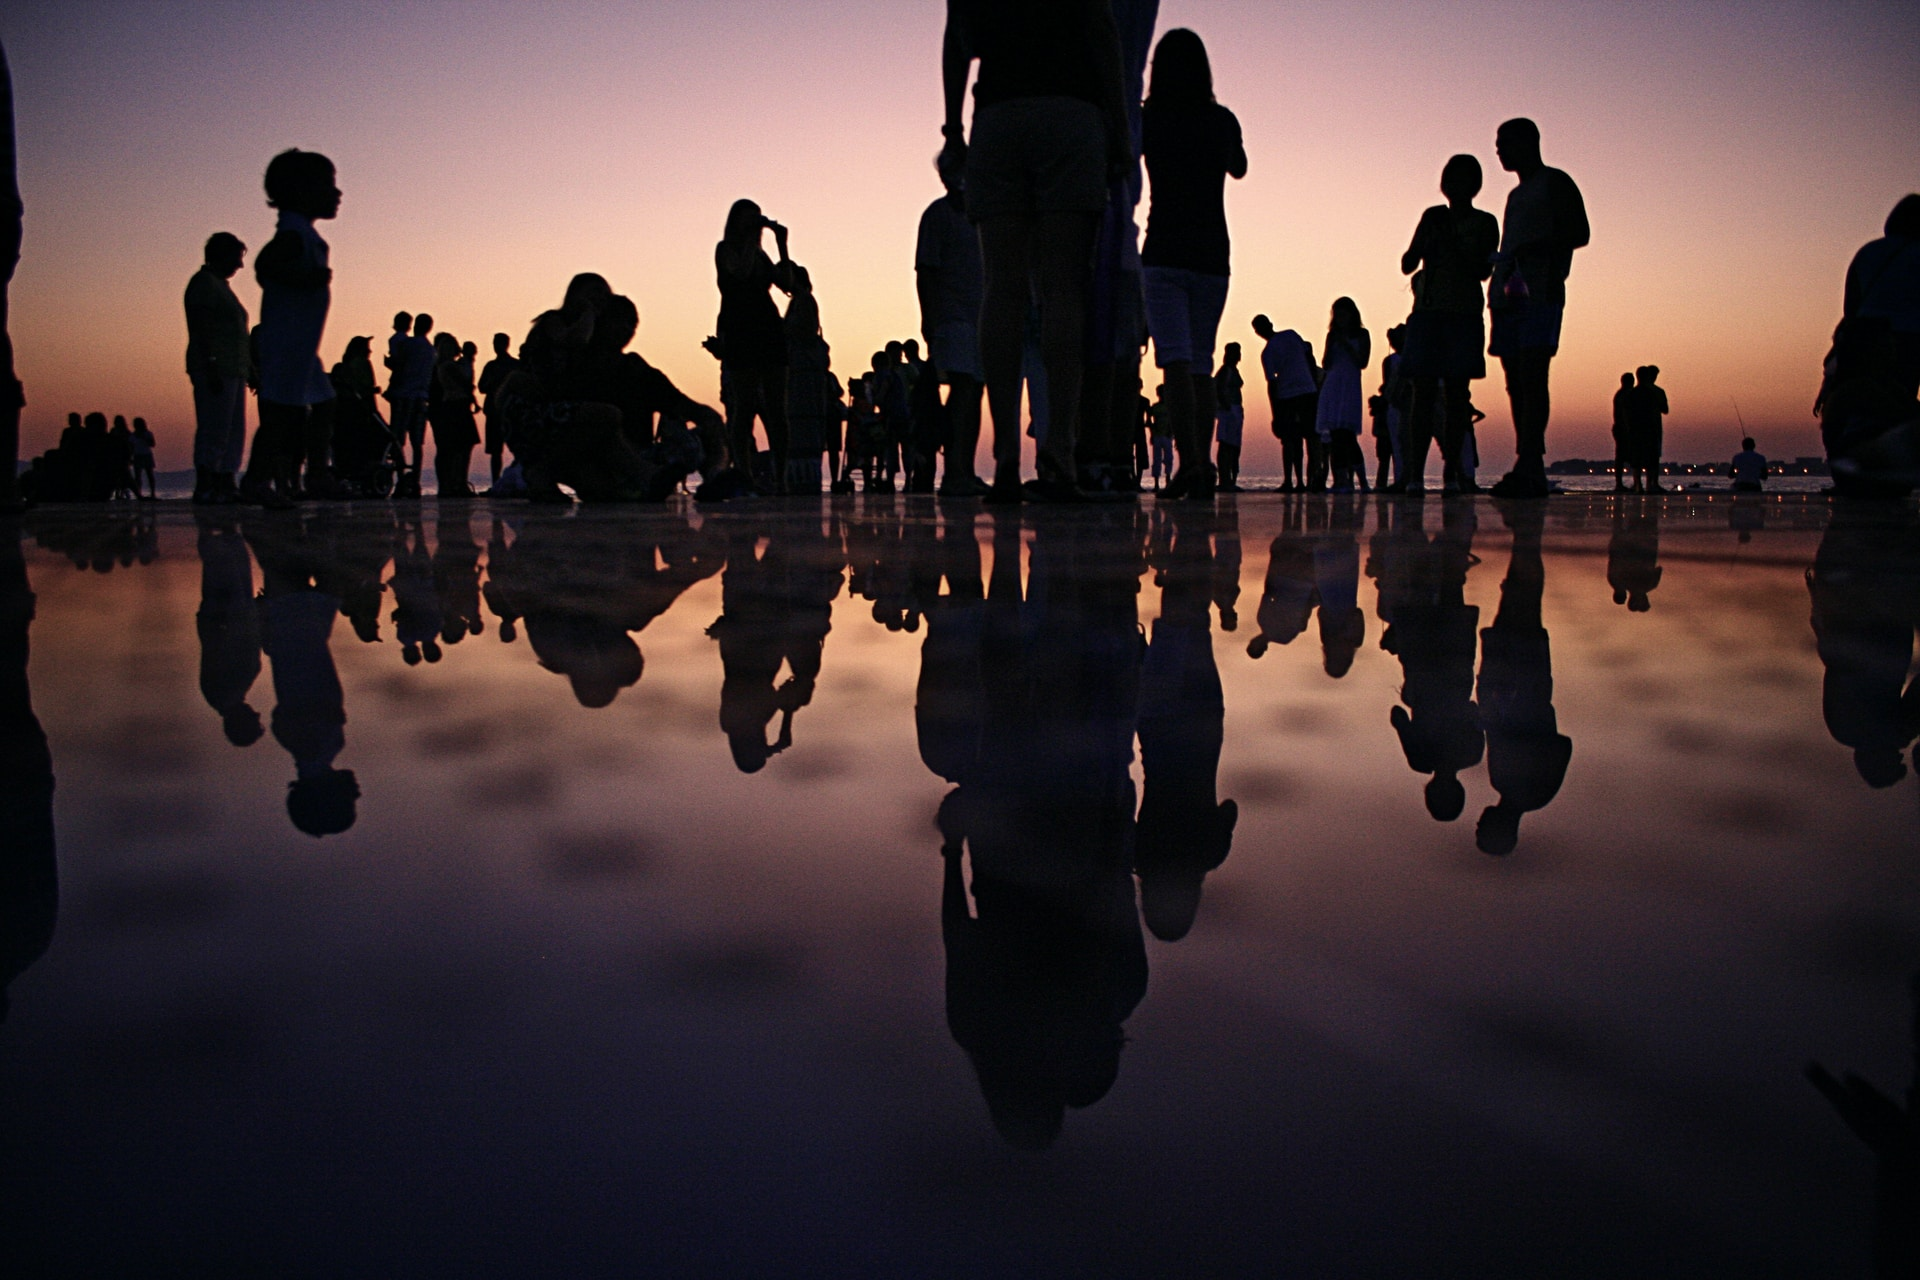 silhouette of people standing on mirror during golden hour